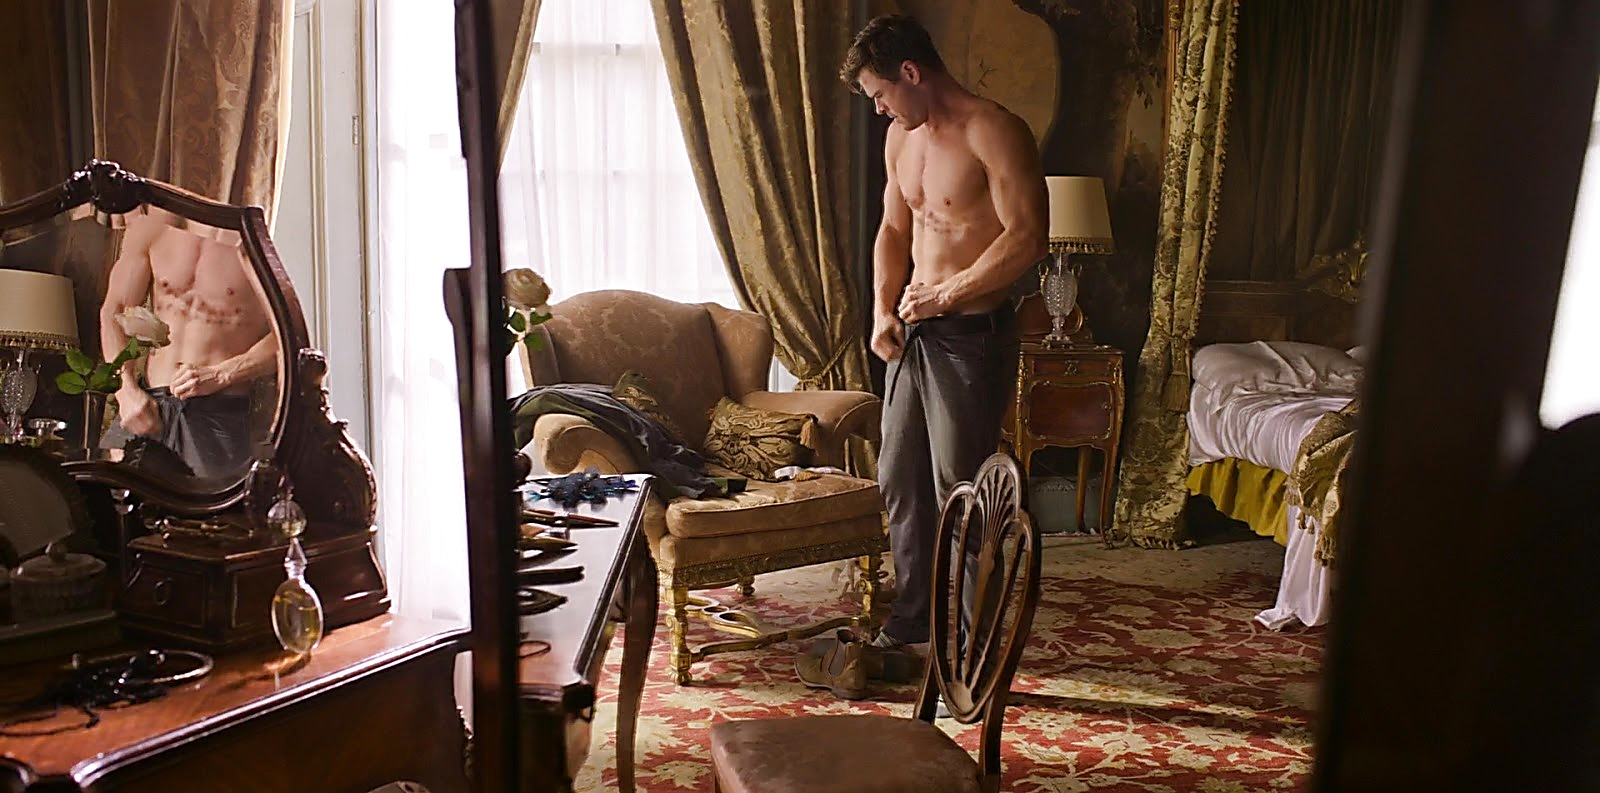 Chris Hemsworth sexy shirtless scene August 24, 2019, 6am